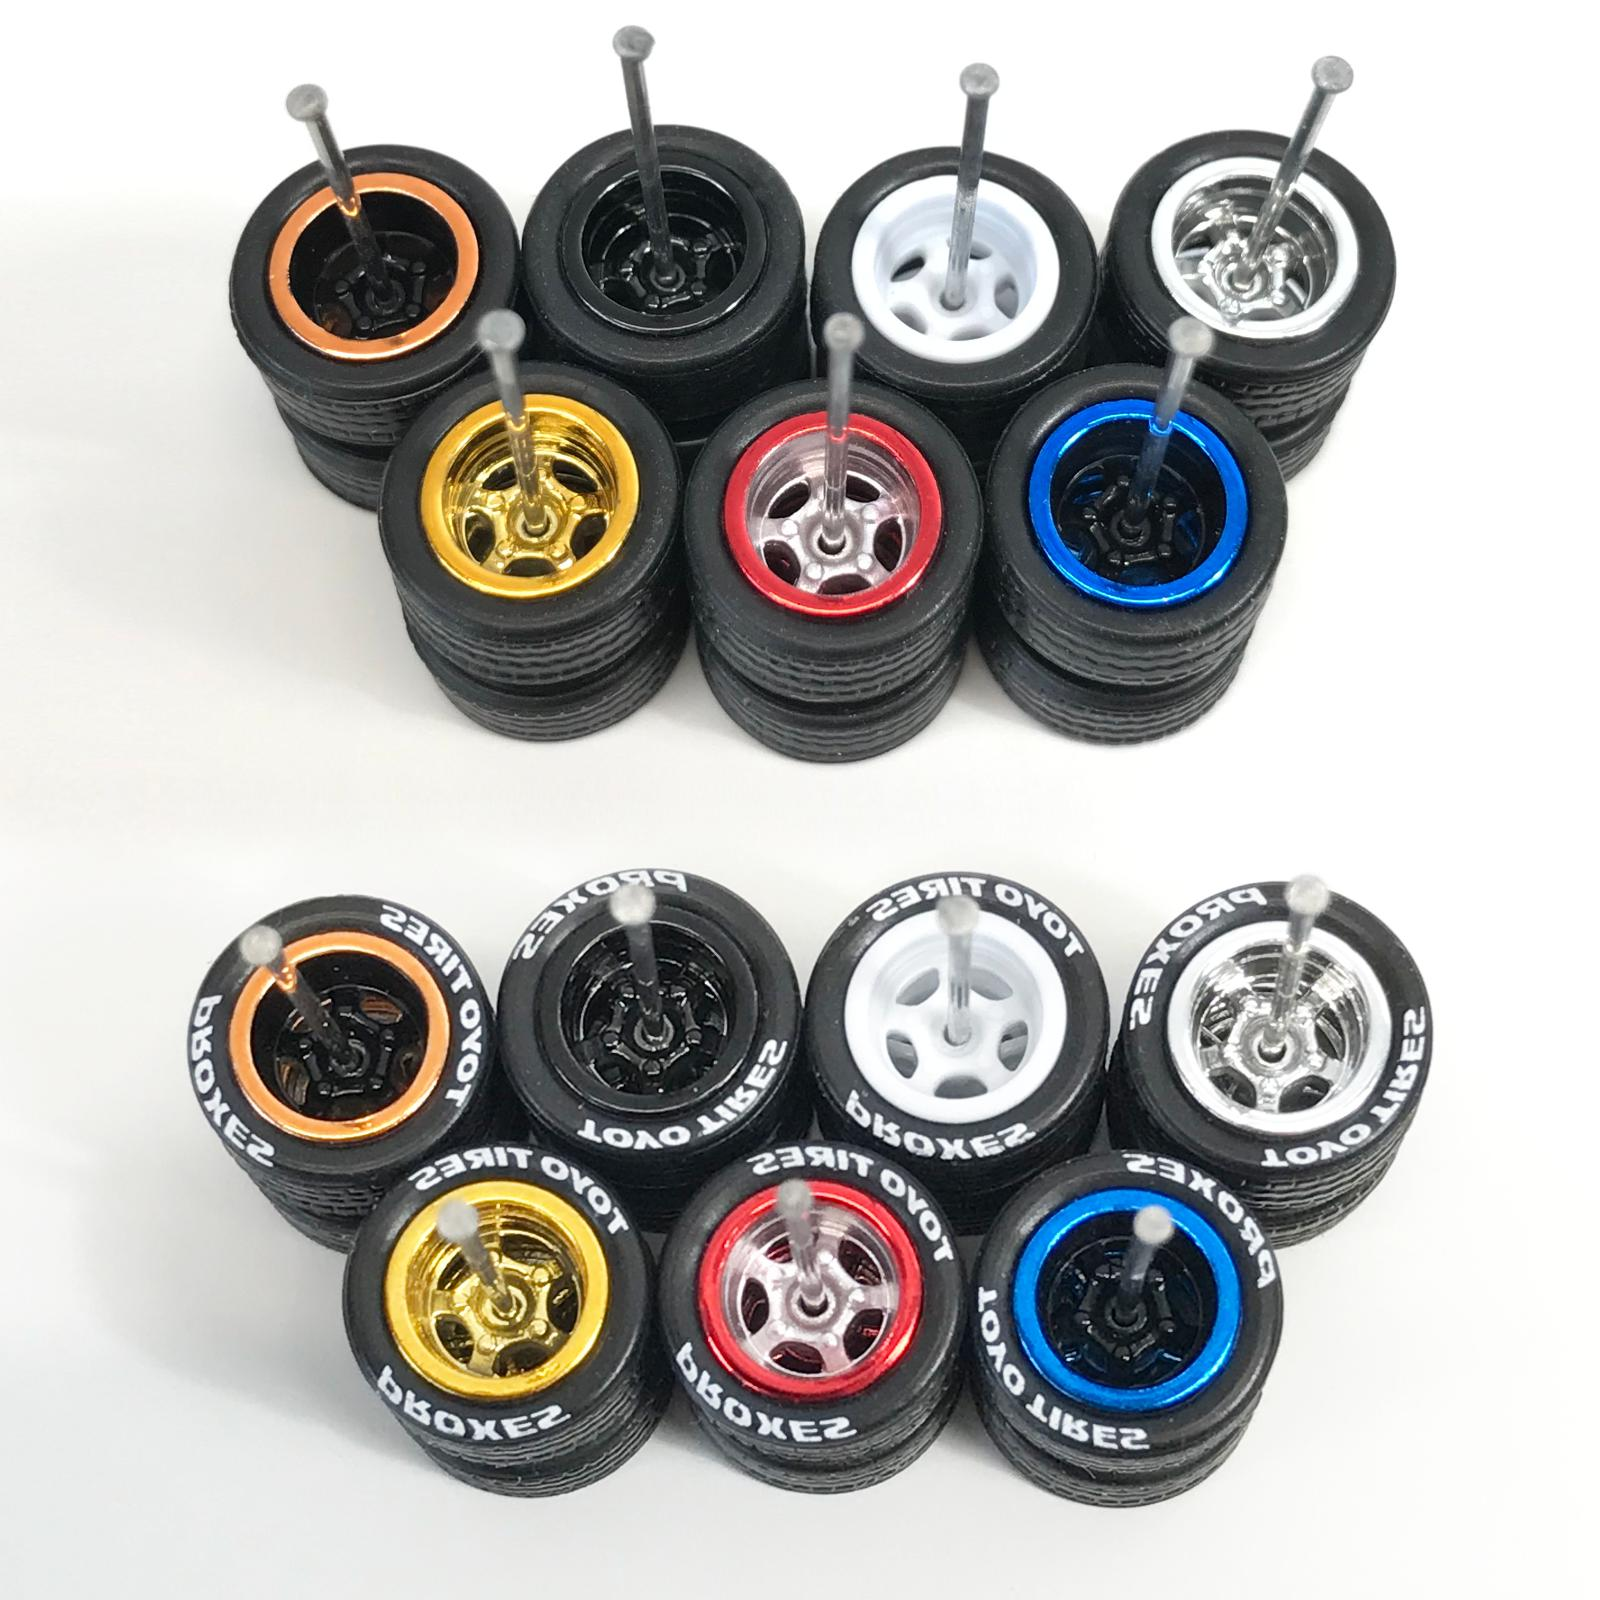 Hot Real Wheels and Set for 1/64 Scale